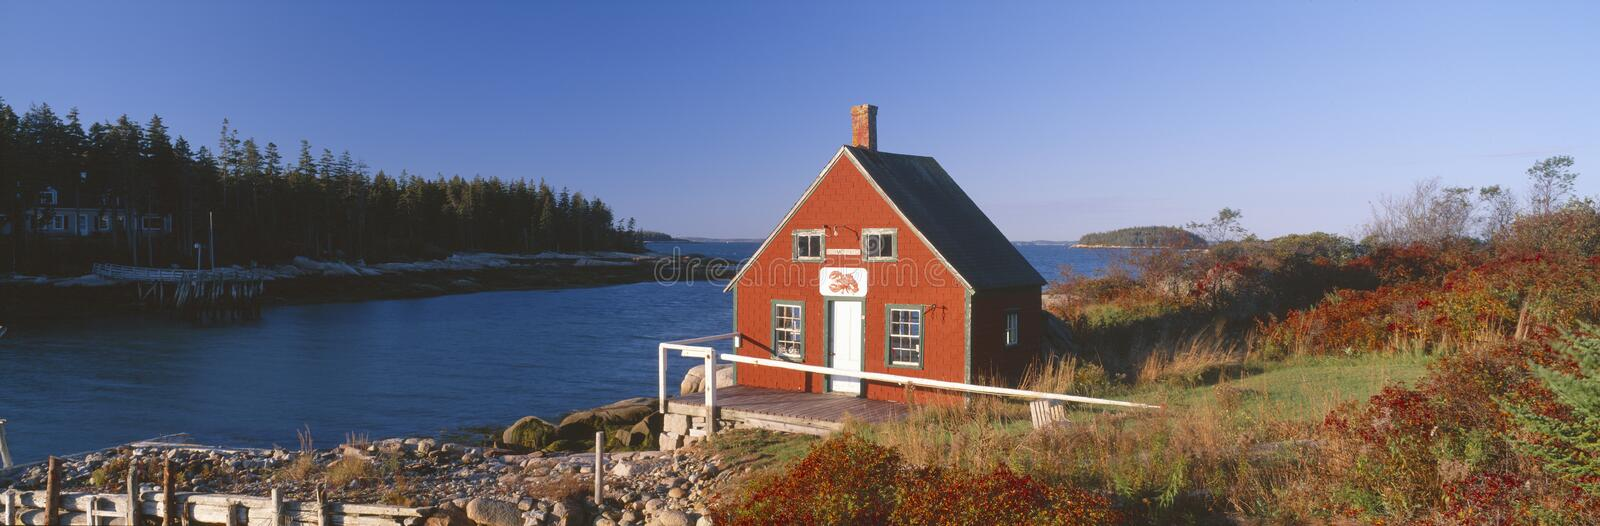 Lobster House in Autumn royalty free stock photography